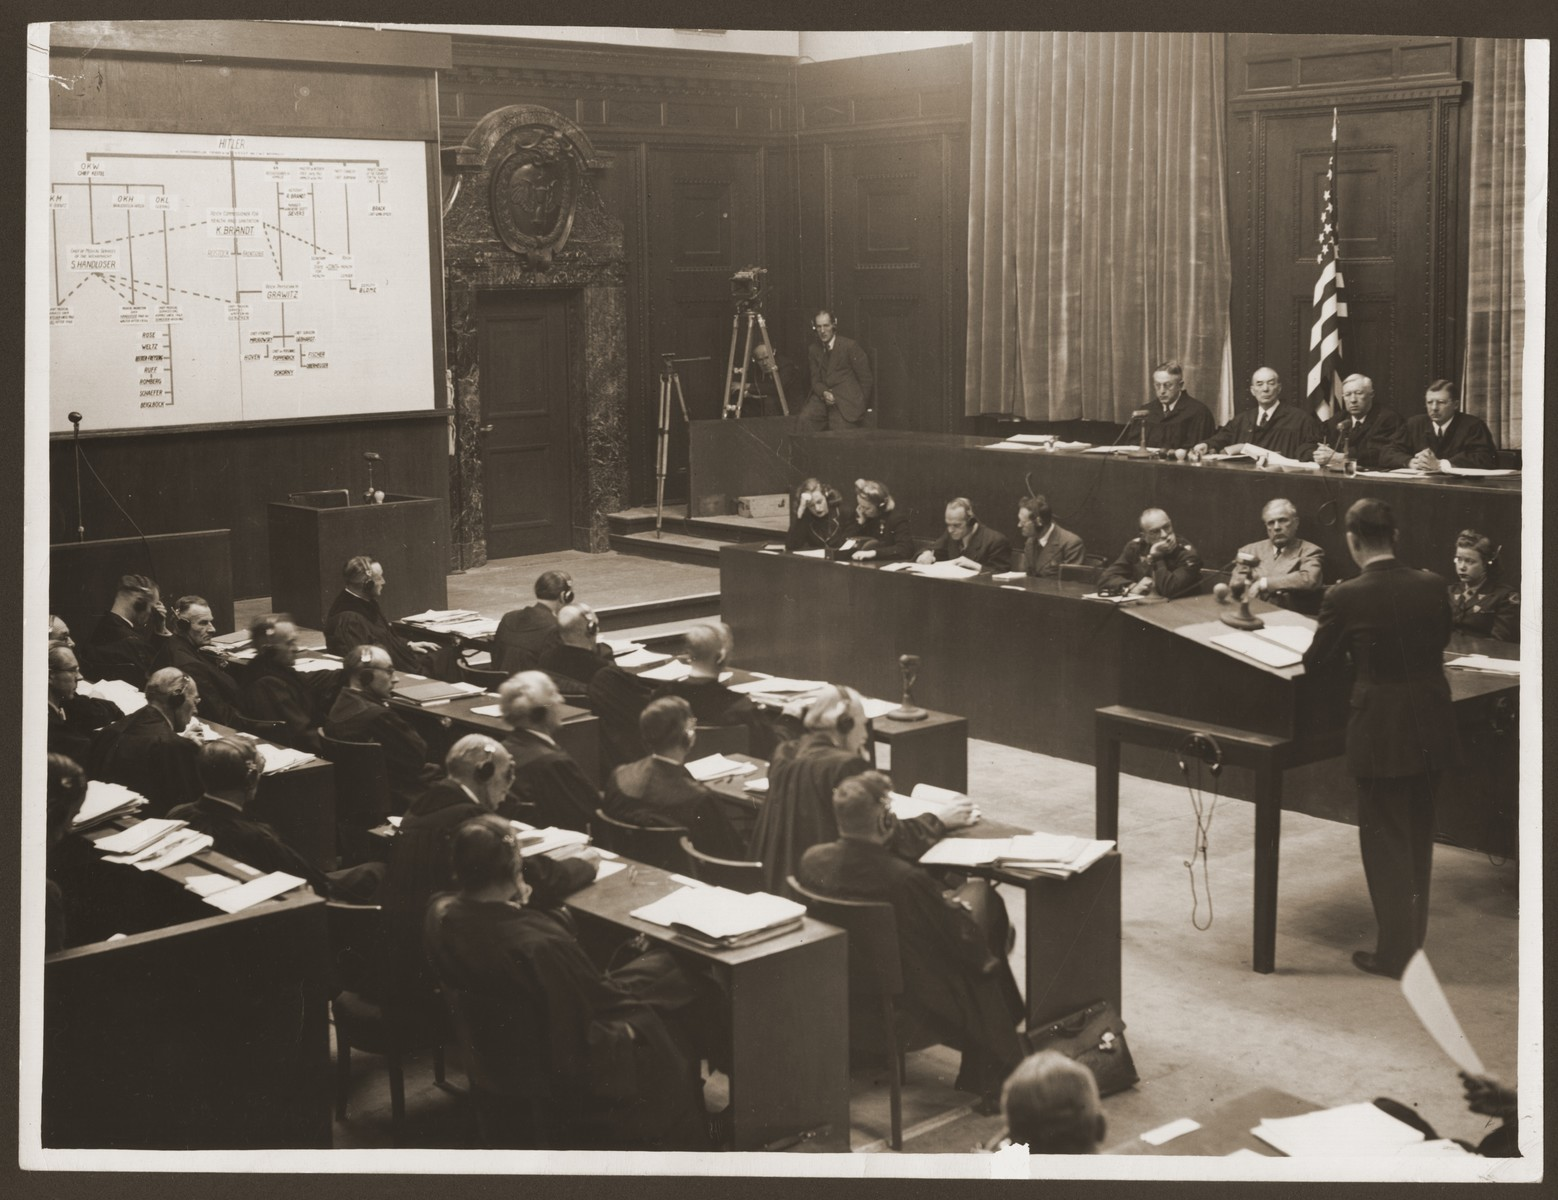 Courtroom scene during a session of the Medical Case (Doctors') Trial in Nuremberg.   The defense lawyers (bottom left) and the Military Tribunal I (upper right) hear the presentation of evidence.